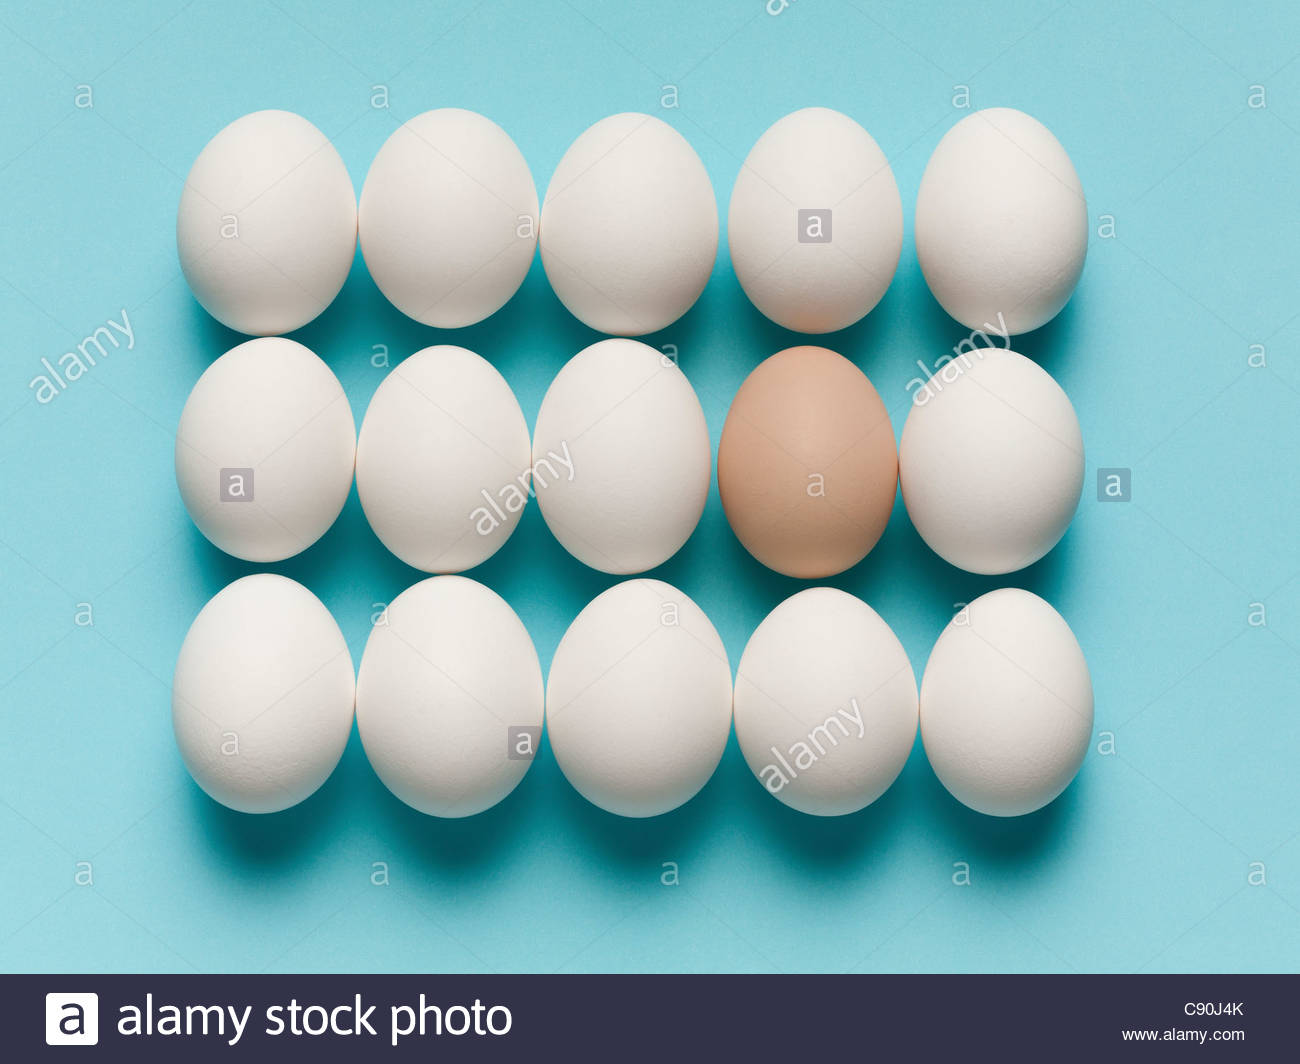 Brown egg with large white eggs Stock Photo